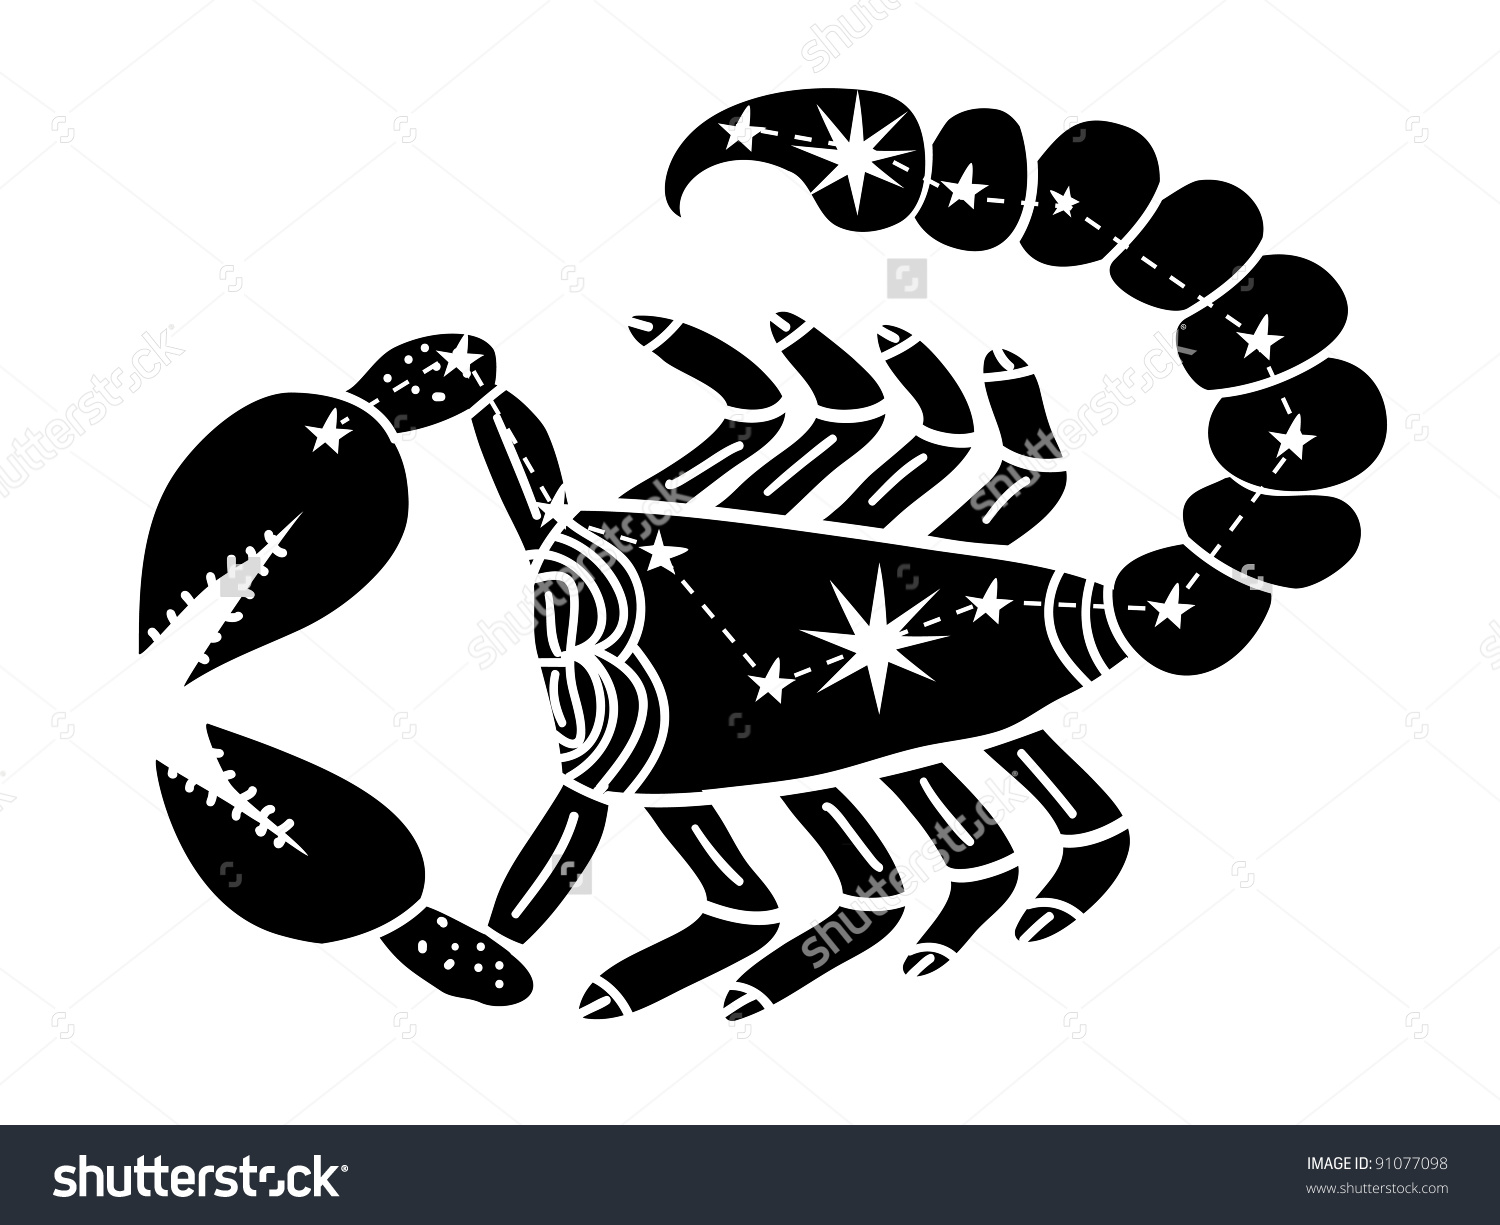 Scorpio Constellation Zodiac Black Stock Vector 91077098.